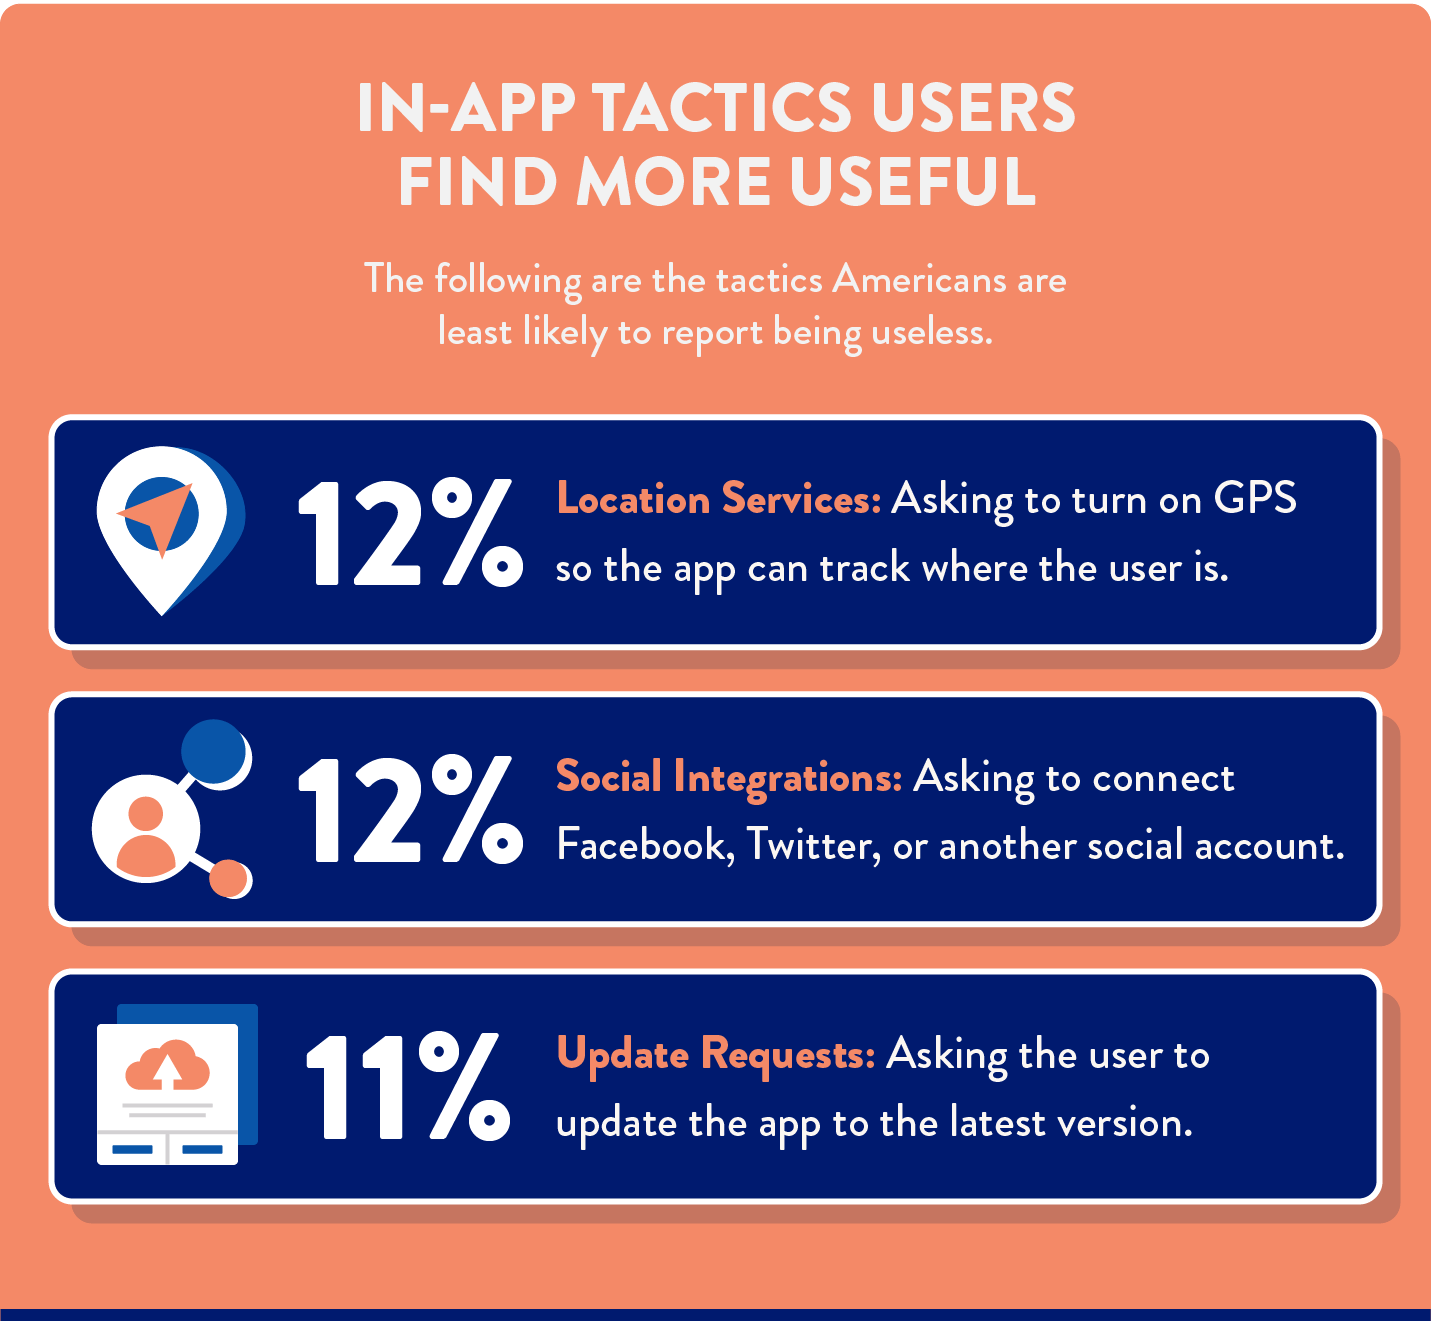 mobile app features users find less annoying including location services, social integration, and update requests